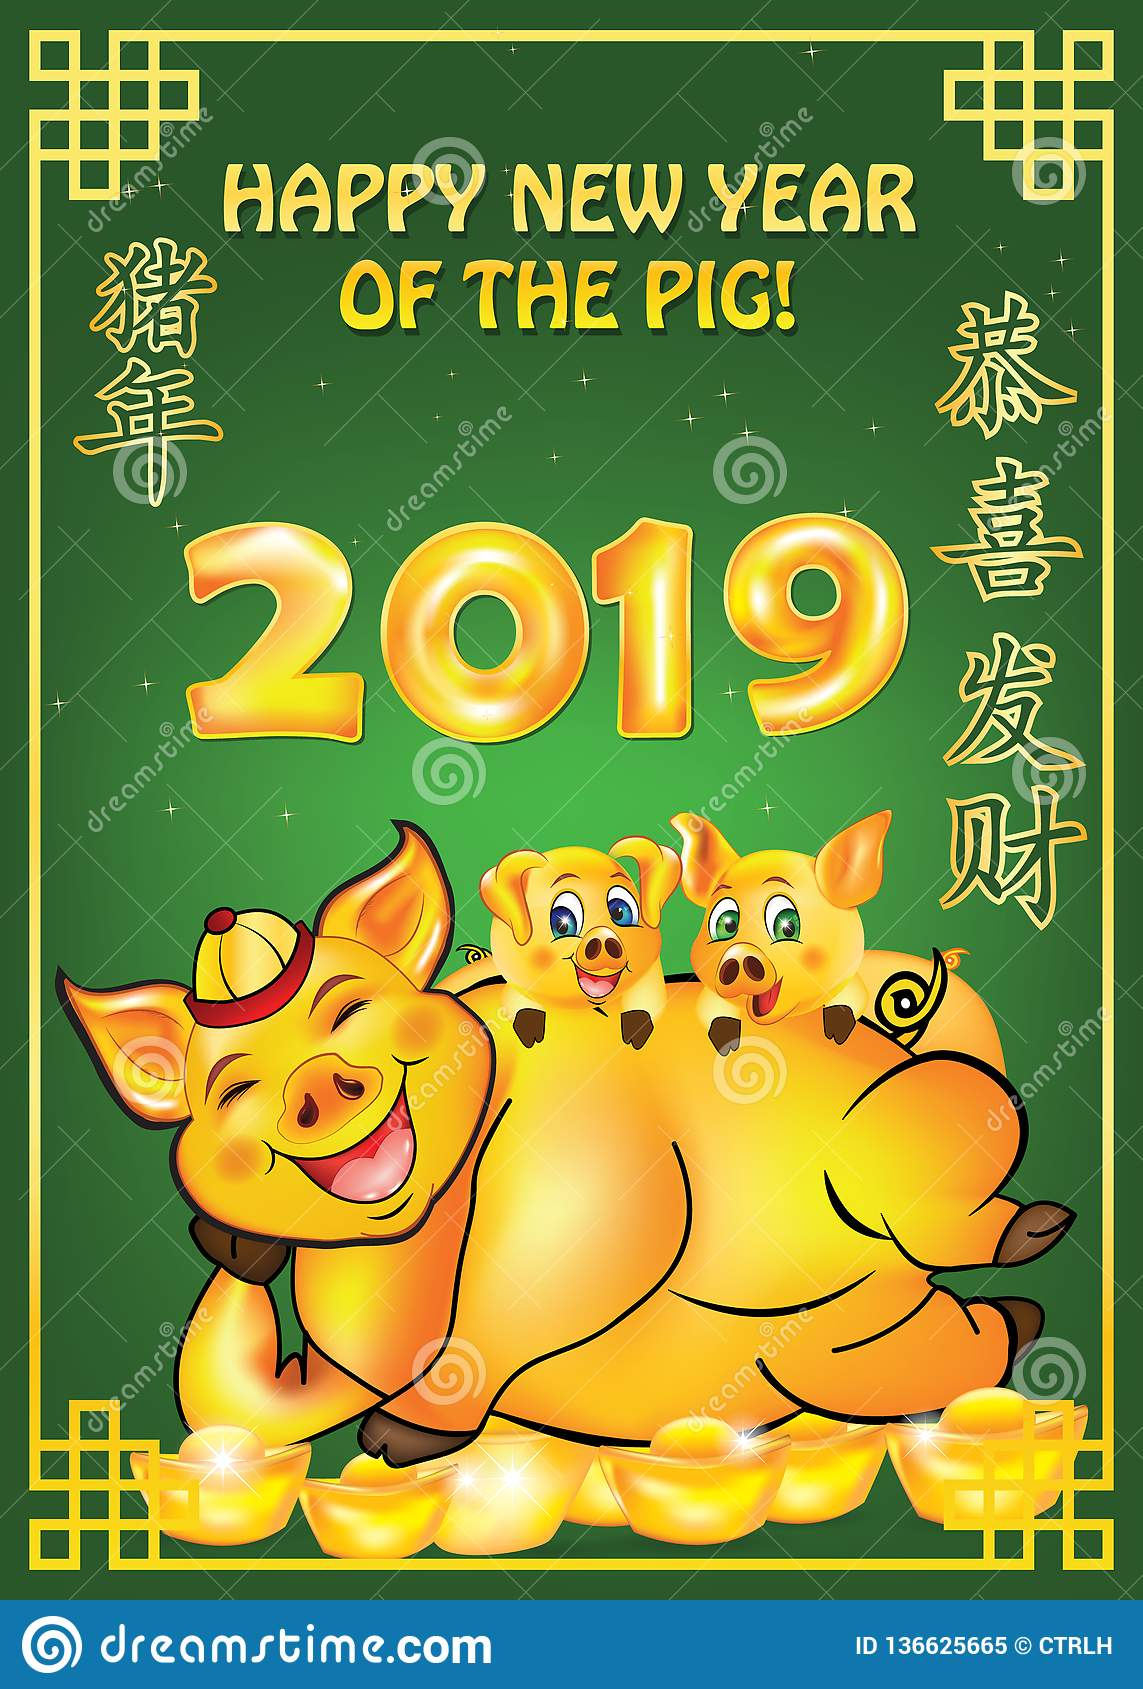 Happy Chinese New Year Of The Earth Pig 2019 - Greeting Card